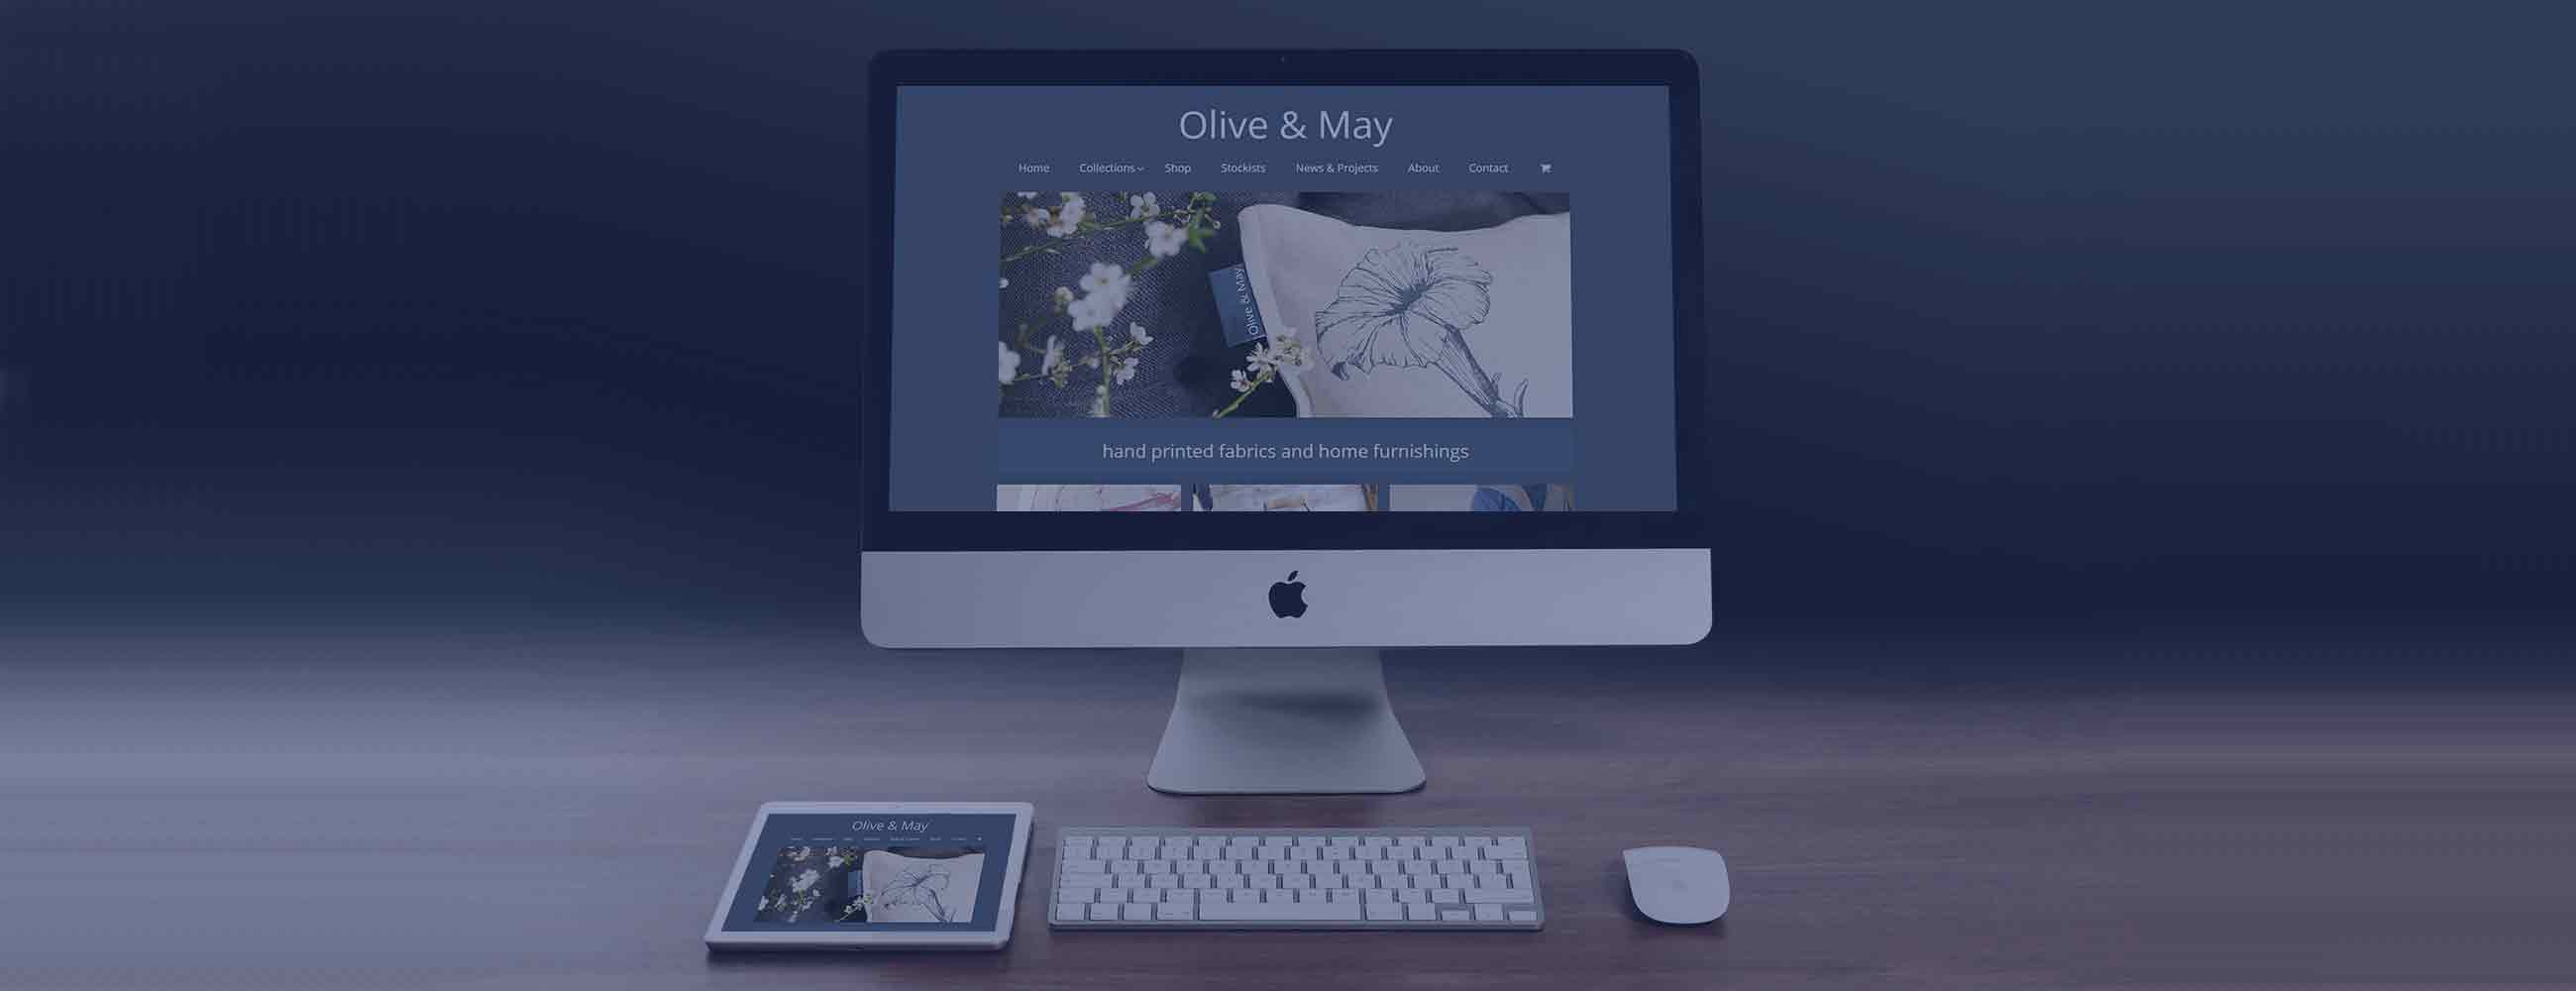 Olive and May Wordpress Shop design